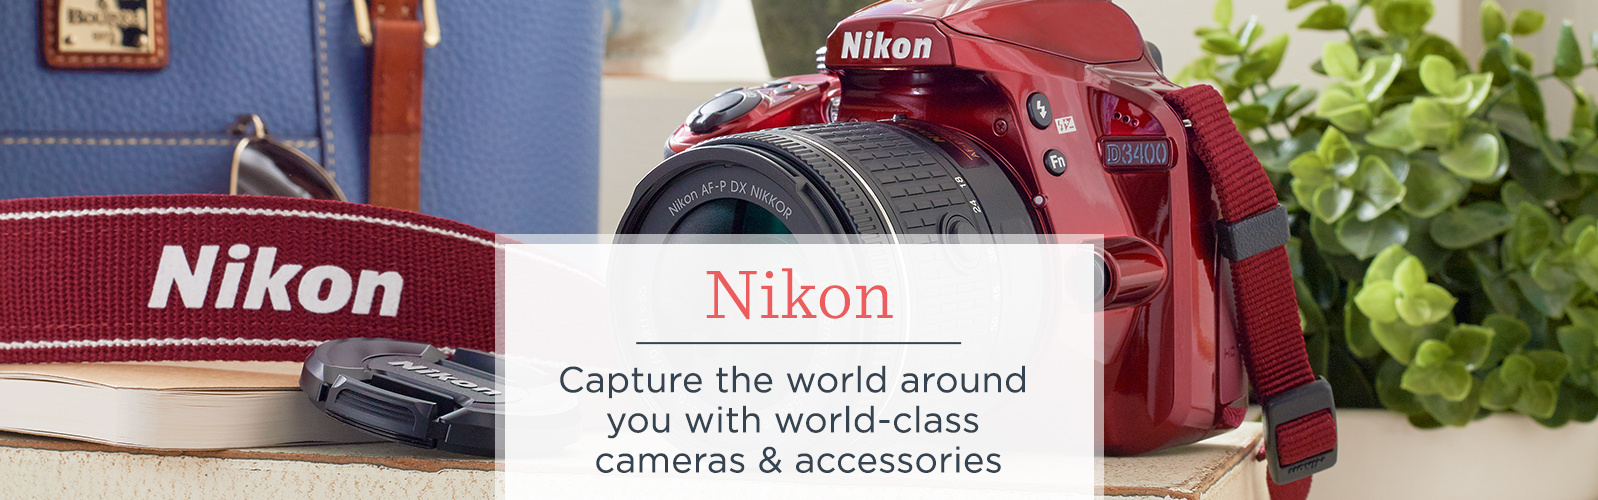 Nikon — Capture the world around you with world-class cameras & accessories